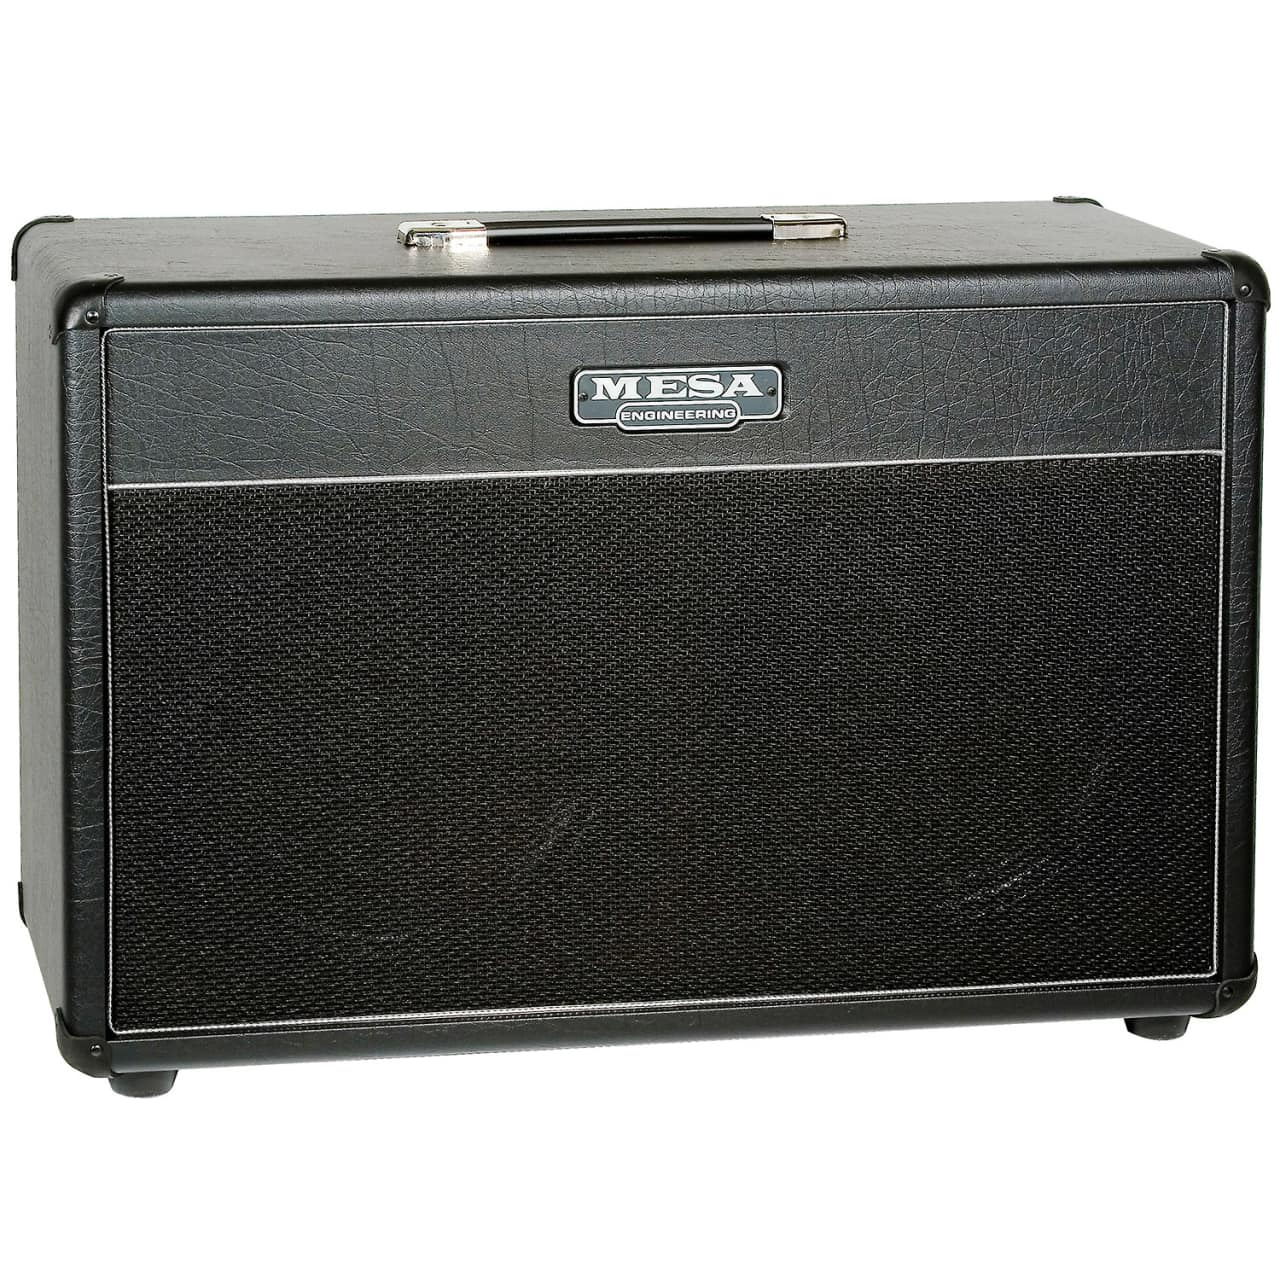 Mesa boogie lone star 2x12 cabinet black reverb for Mesa boogie lonestar 2x12